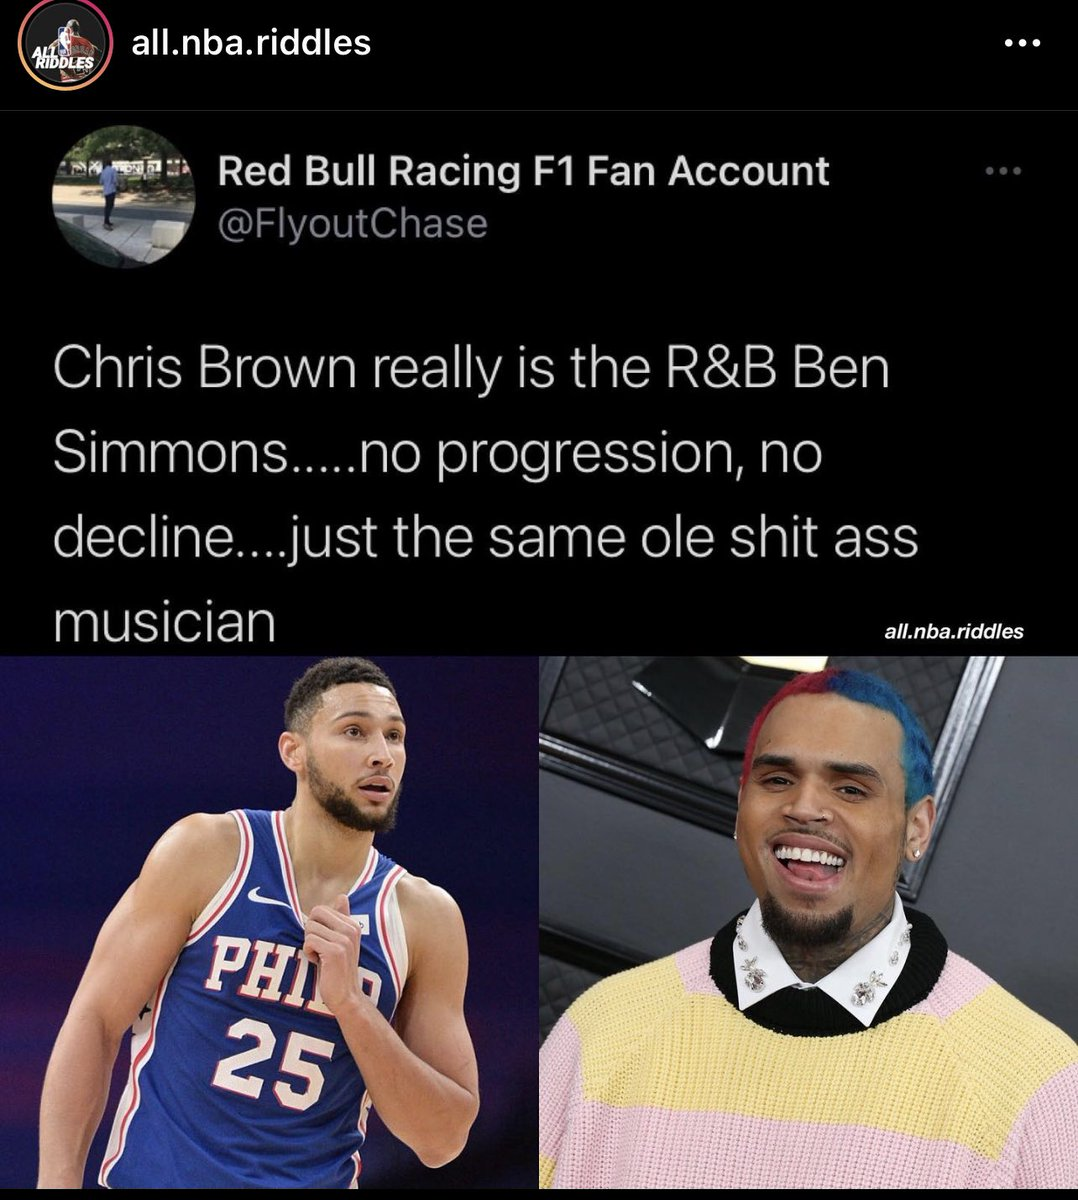 Chris Brown got compared to Ben Simmons and went off 😳 https://t.co/a5QAbx1q2n